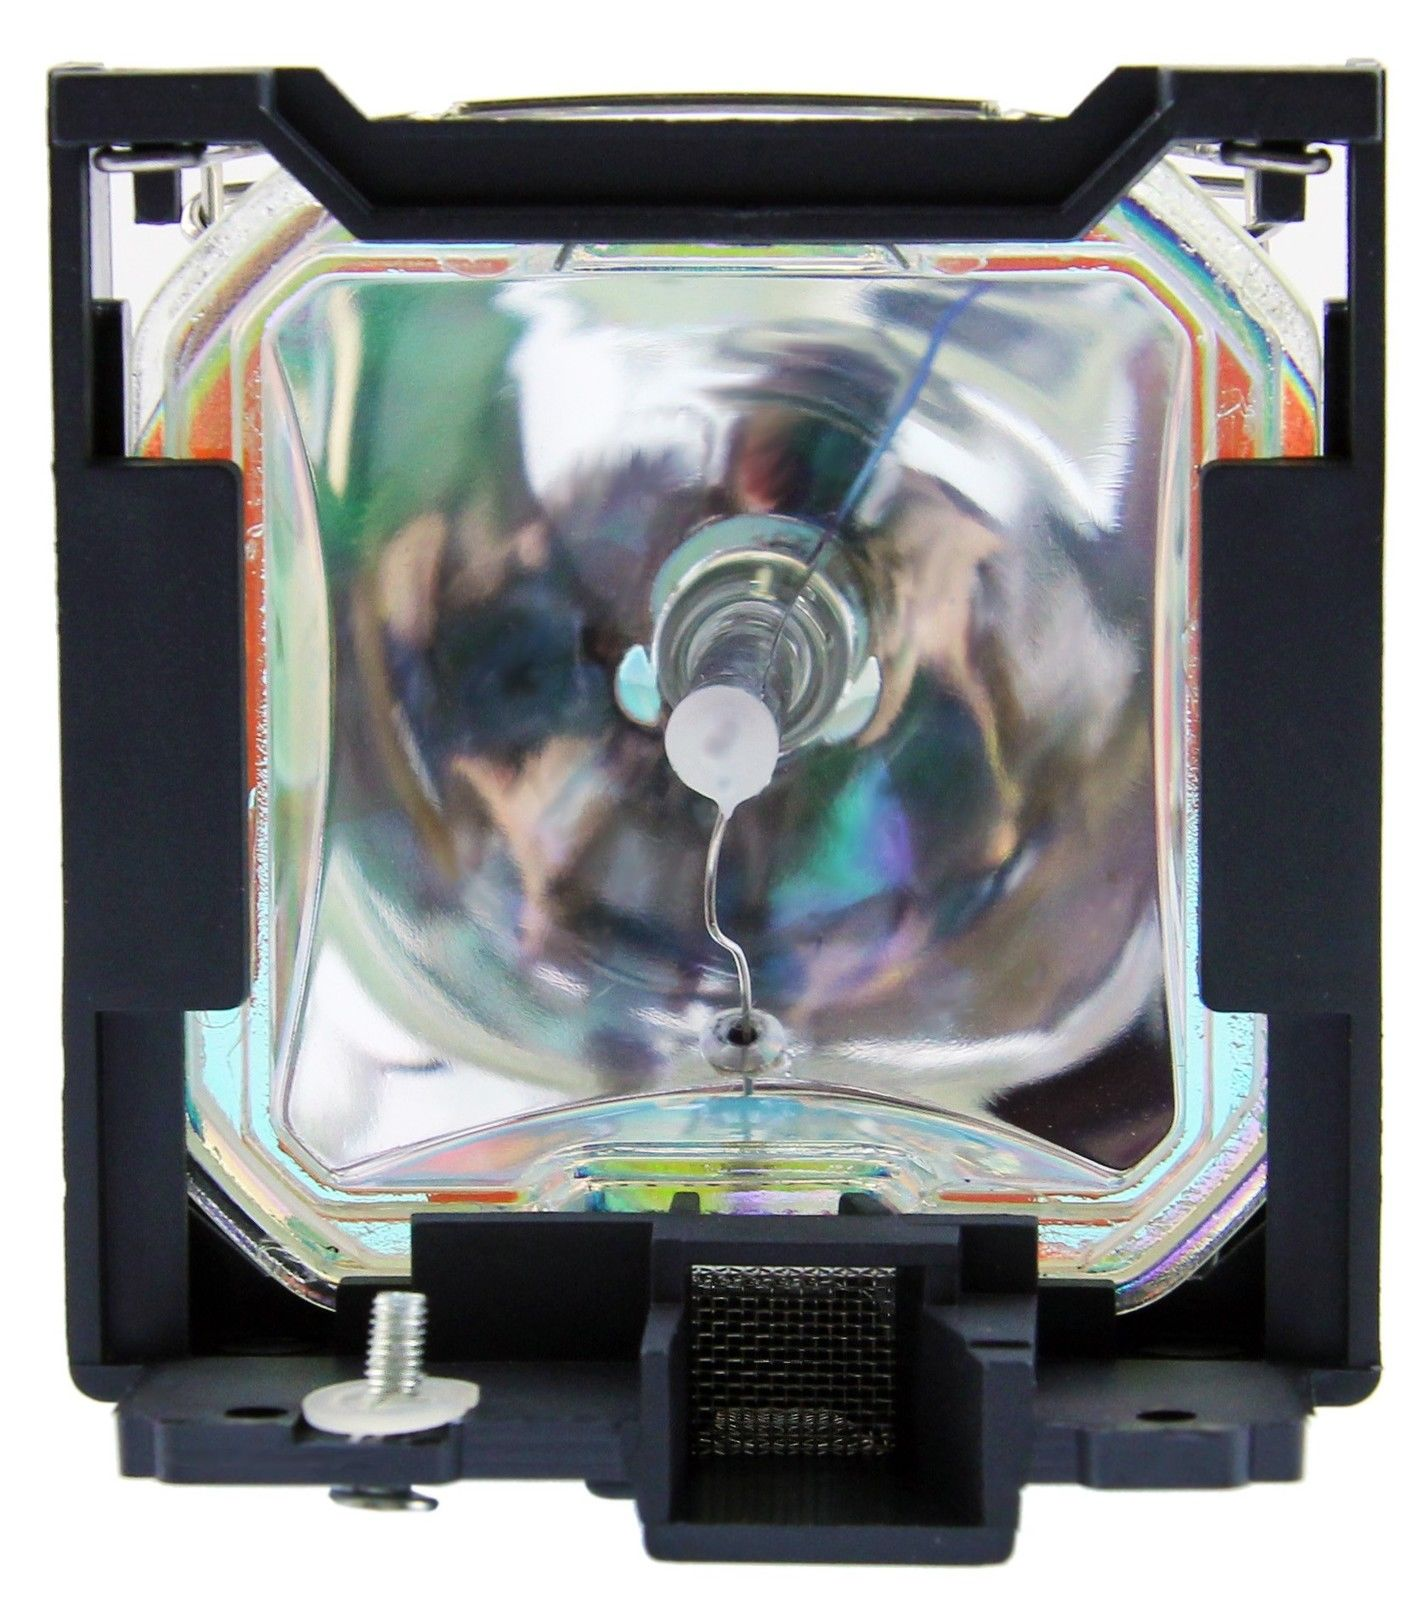 ET-LA785 ETLA785 LA785 For Panasonic PT-L785 L785 PT-L785E L785E PT-L785U L785U Projector Lamp Bulb with housing projector lamp bulb et lab80 etlab80 for panasonic pt lb75 pt lb80 pt lw80ntu pt lb75ea pt lb75nt with housing